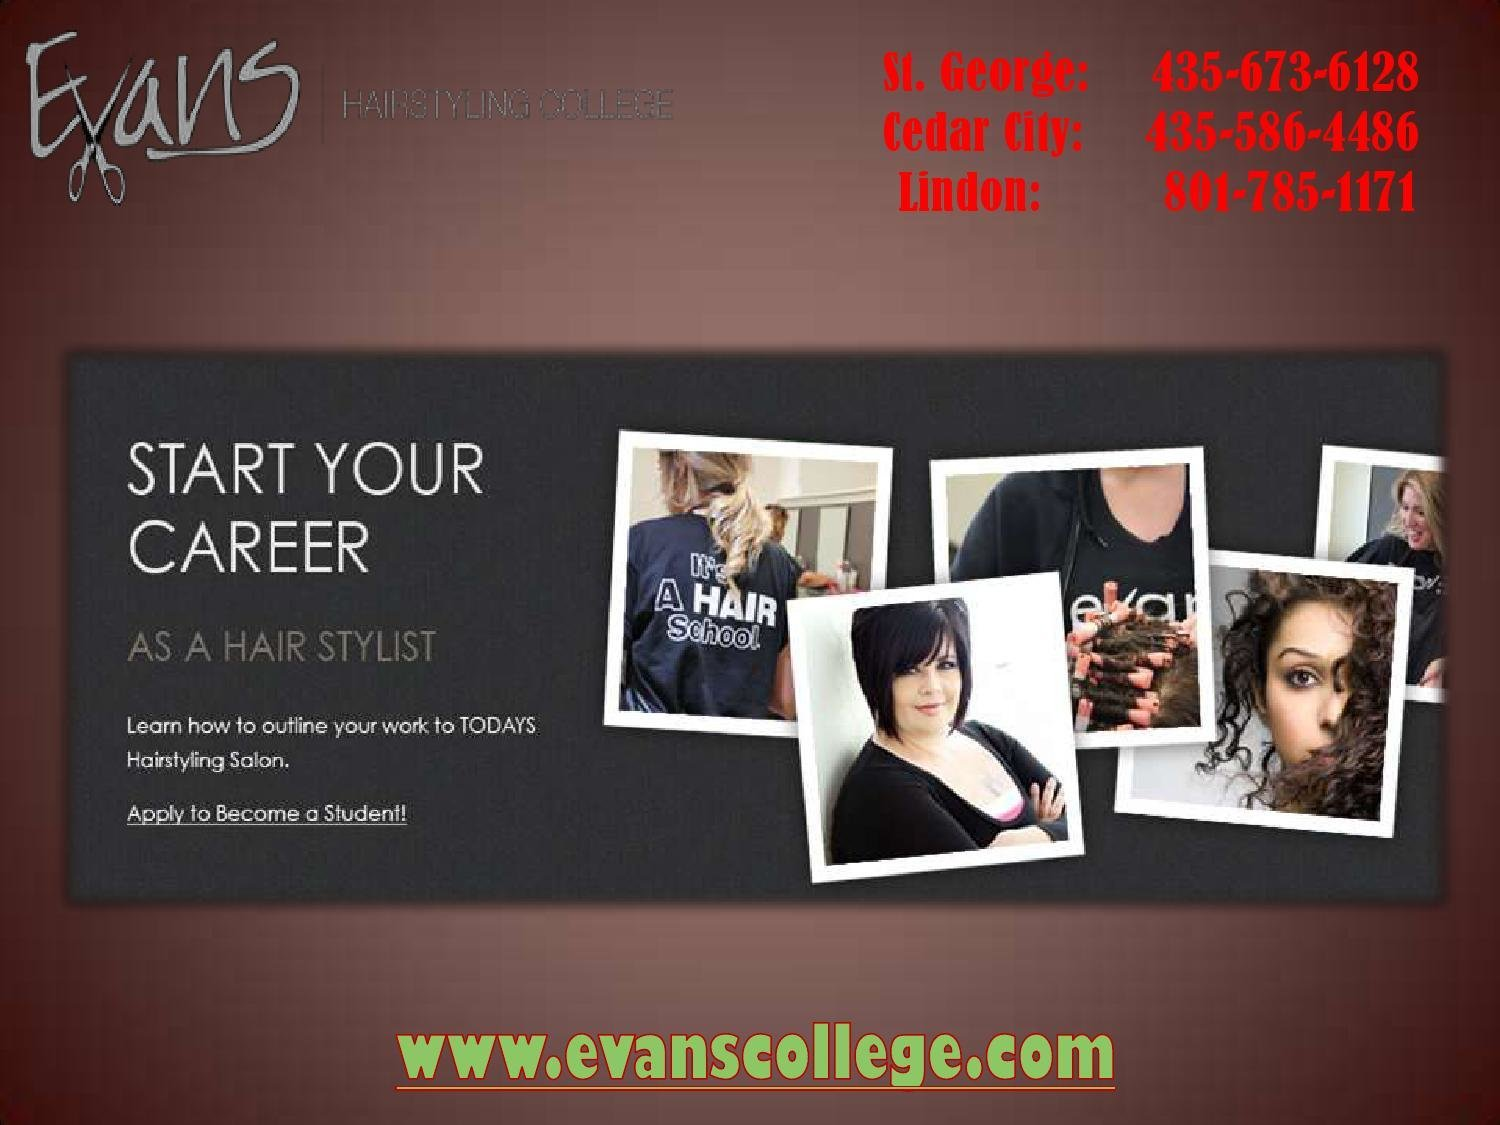 The Best Hairdresser Assistant St George Ut By Evanscollege Issuu Pictures